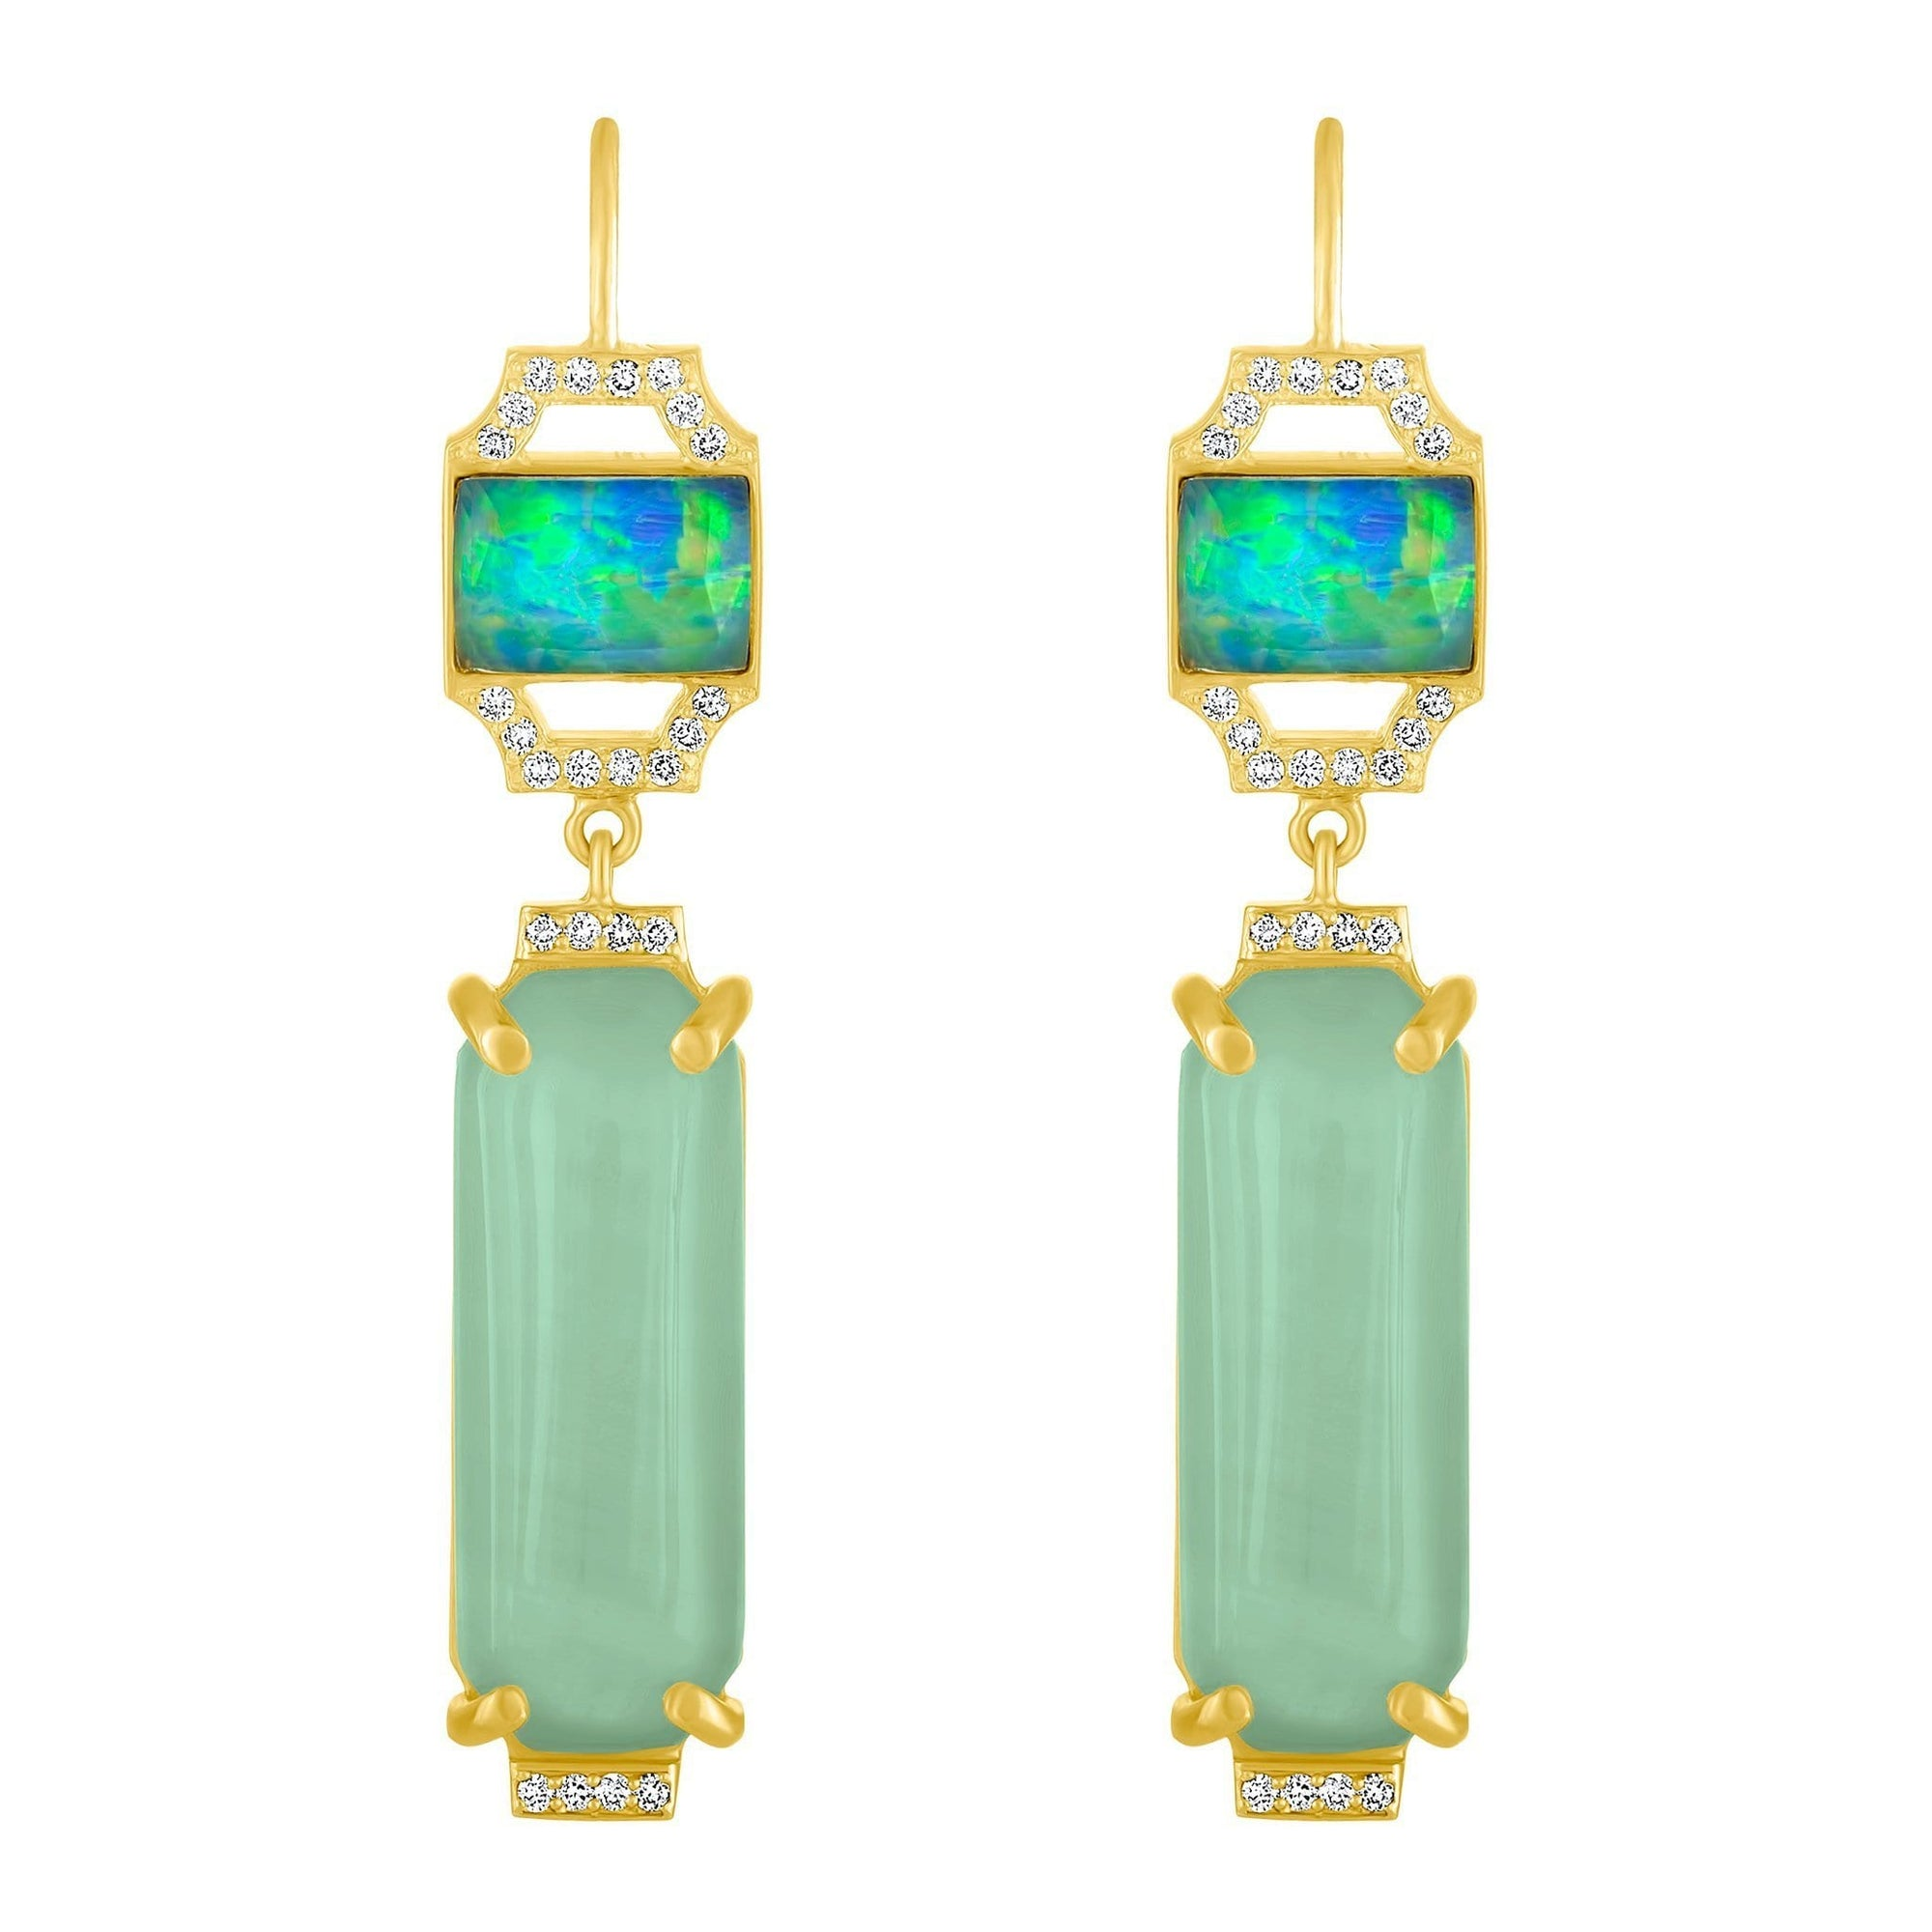 Edge Jazz Earrings: 18k Gold, Diamonds, Opal, Aquamarine, Opal